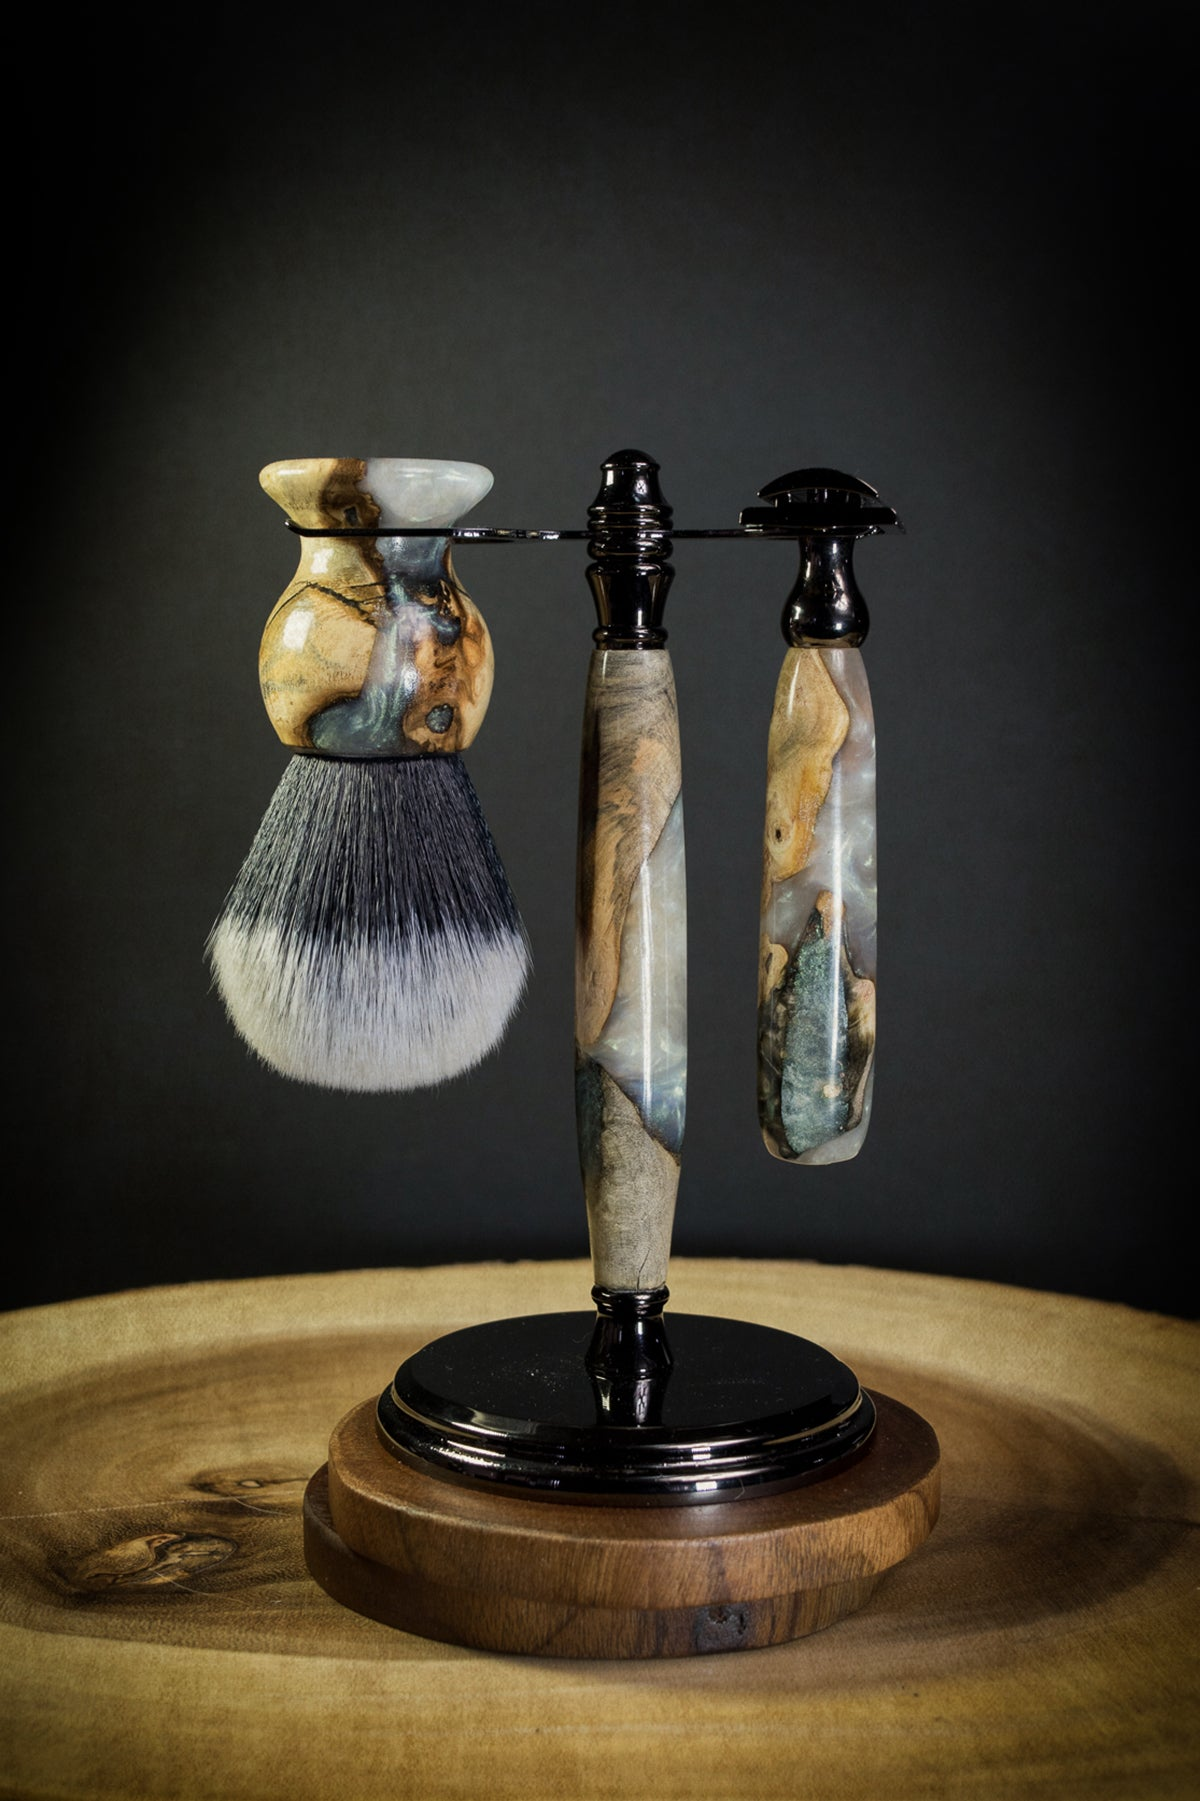 Ernest Hemingway Artisan Series Razor and Brush Shave Set